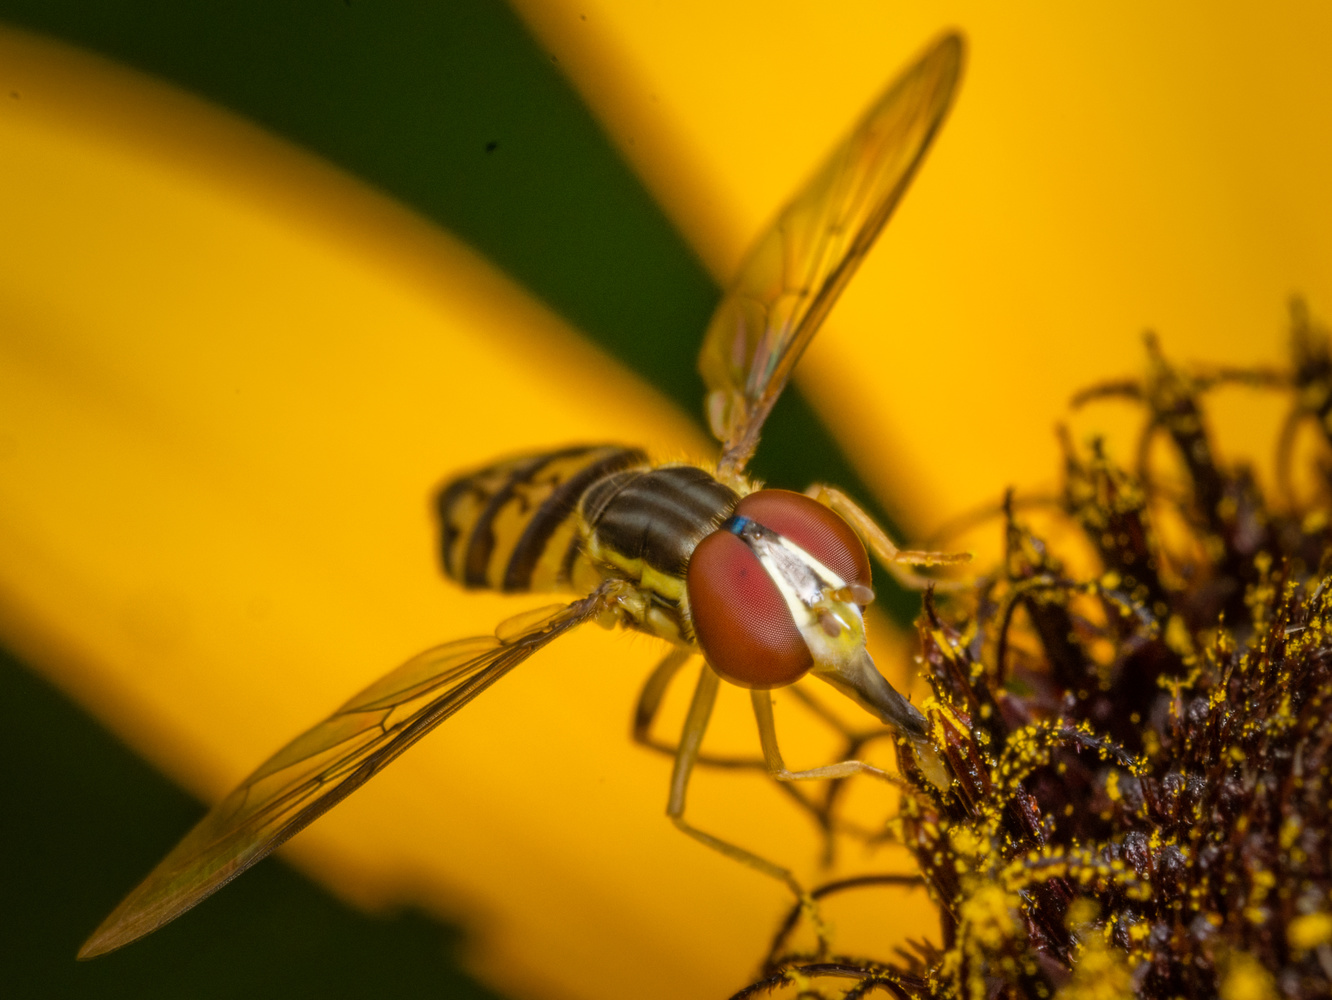 Hoverfly by Jim Elve